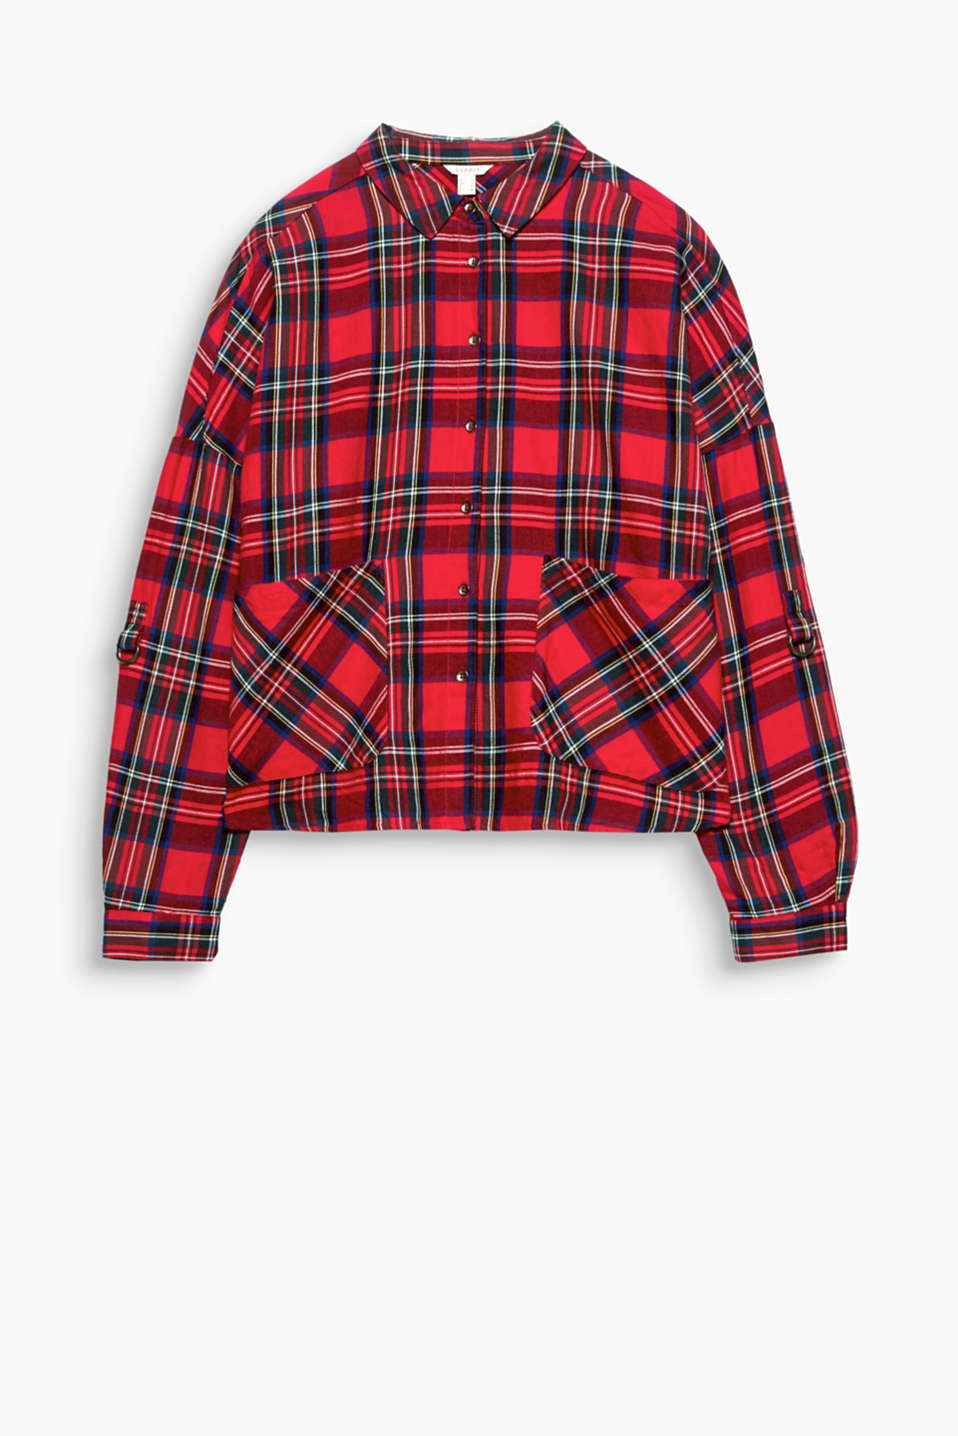 Checks with a twist: The cropped boxy oversize fit makes the classic checks on this blouse look so stylish!